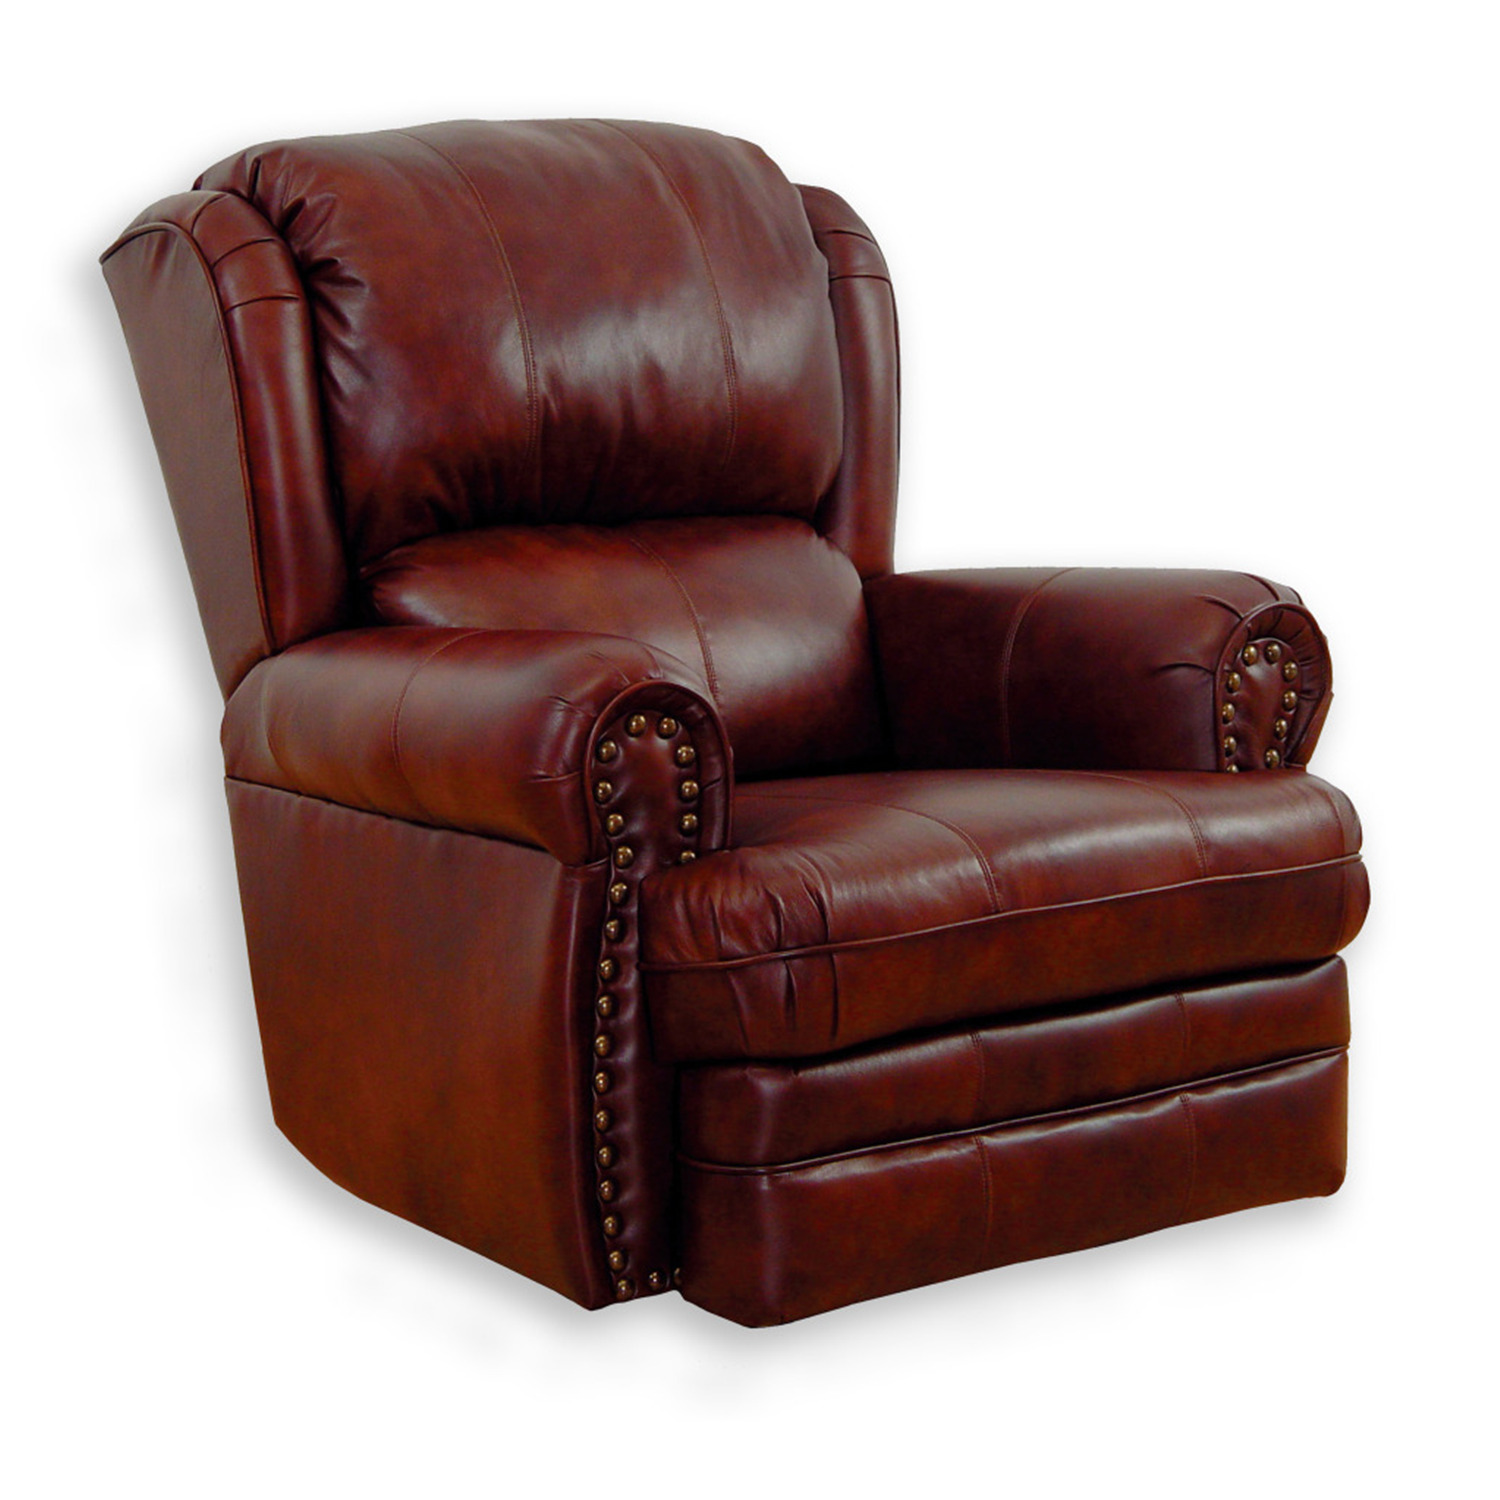 Catnapper Buckingham Leather Rocker Recliner By Oj Commerce